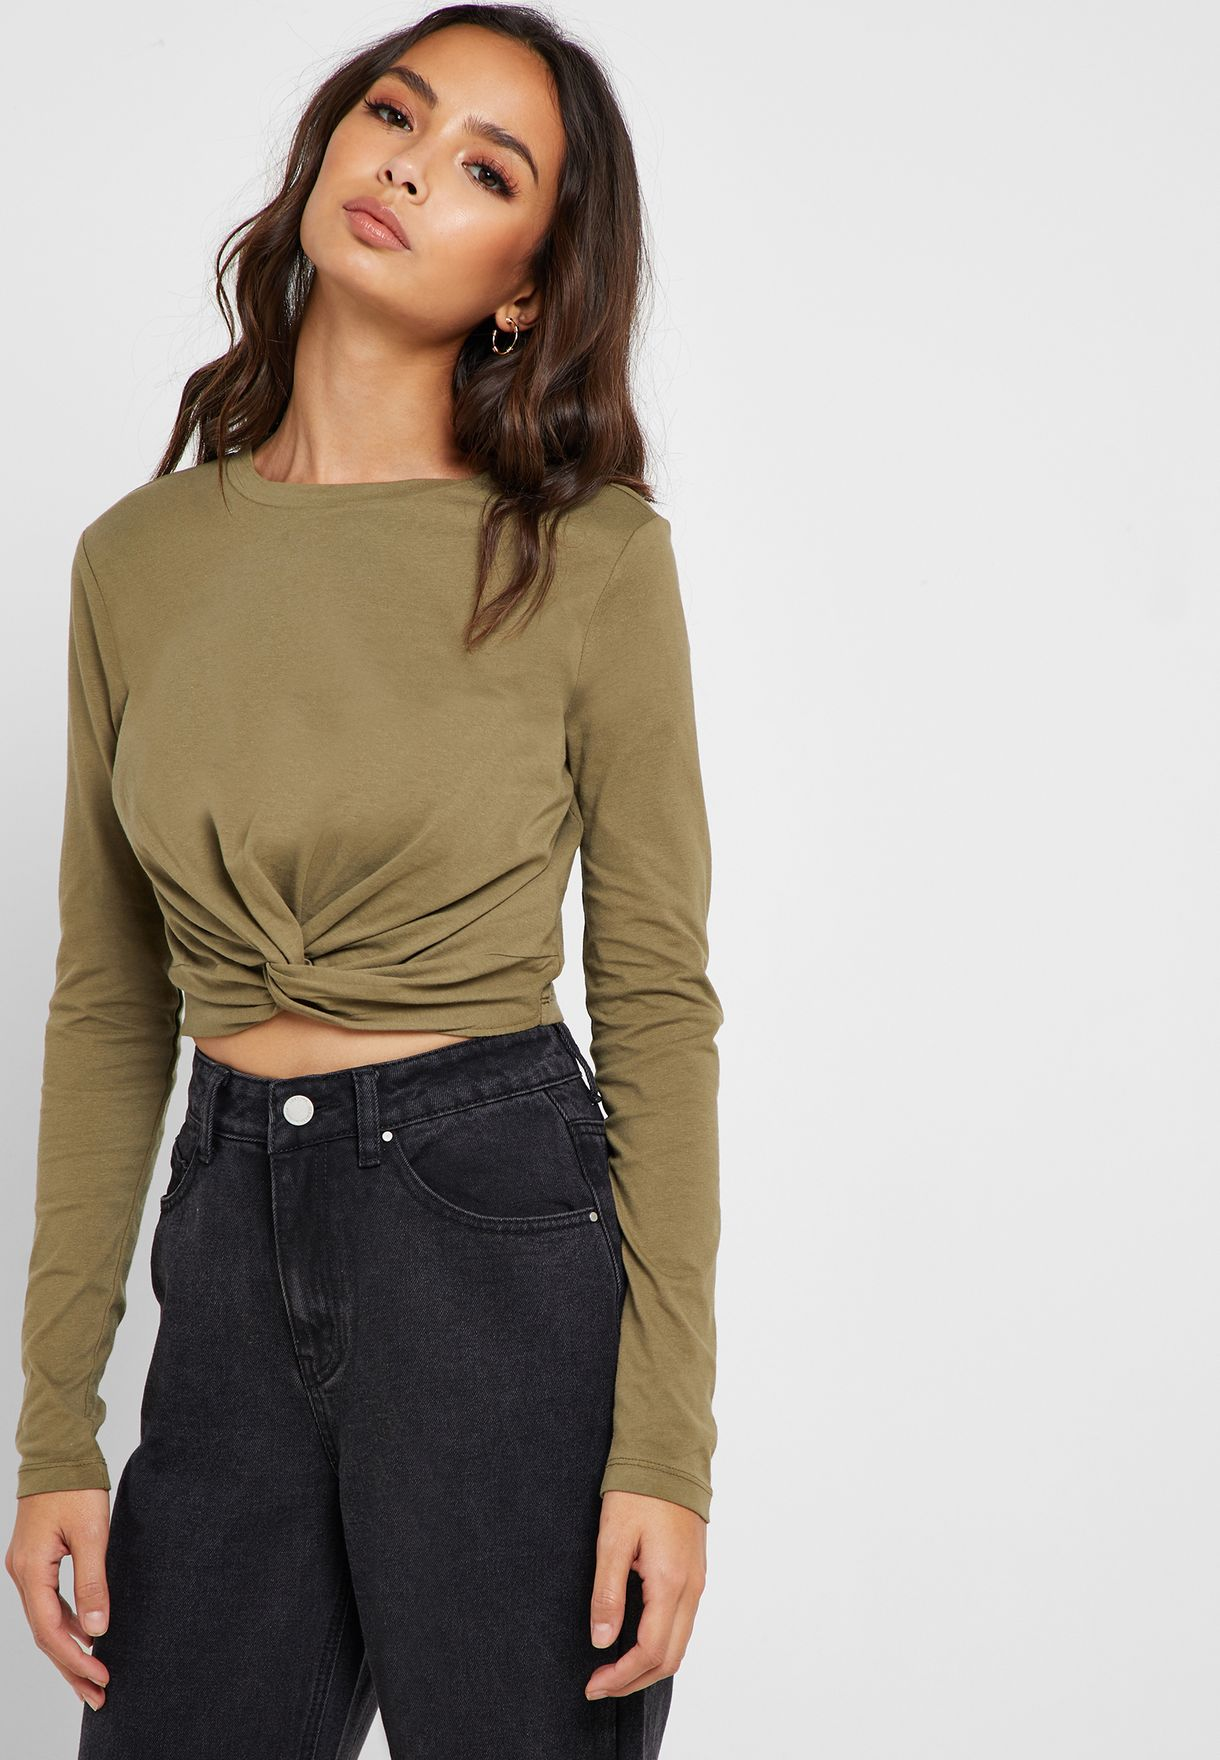 78a3f60b607 Shop Forever 21 green Twist-Front Crop Top 310835 for Women in ...